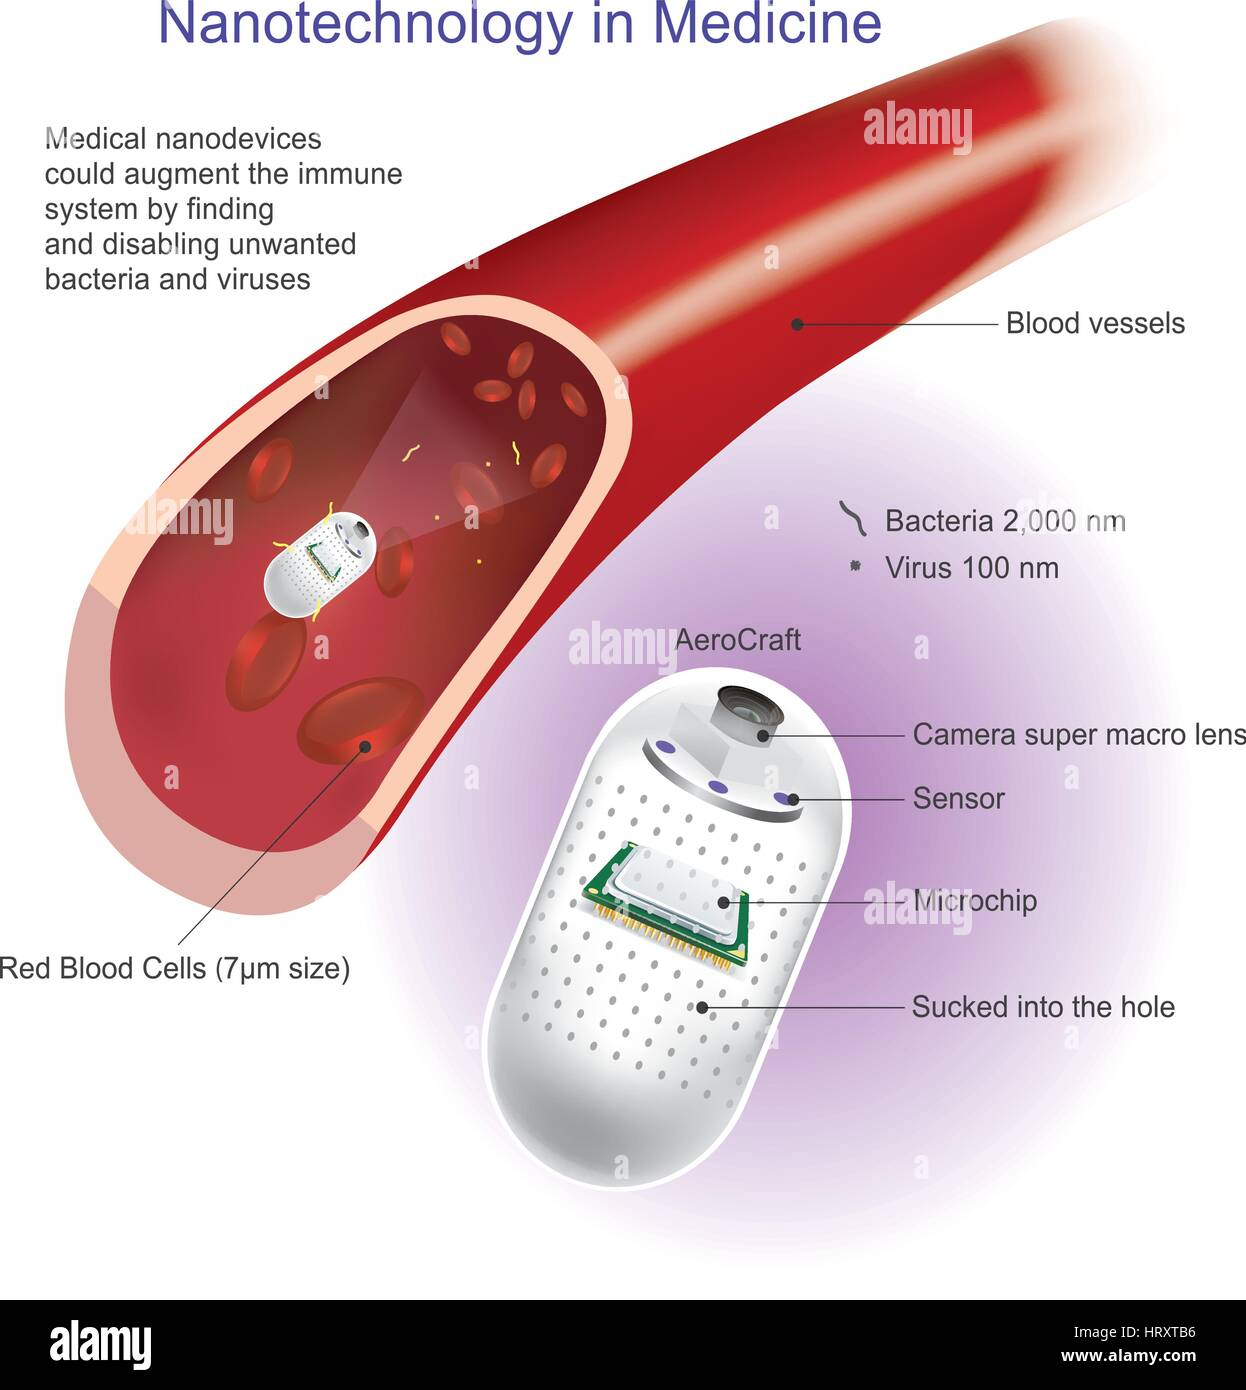 angioplasty or balloon angioplasty is an endovascular procedure to